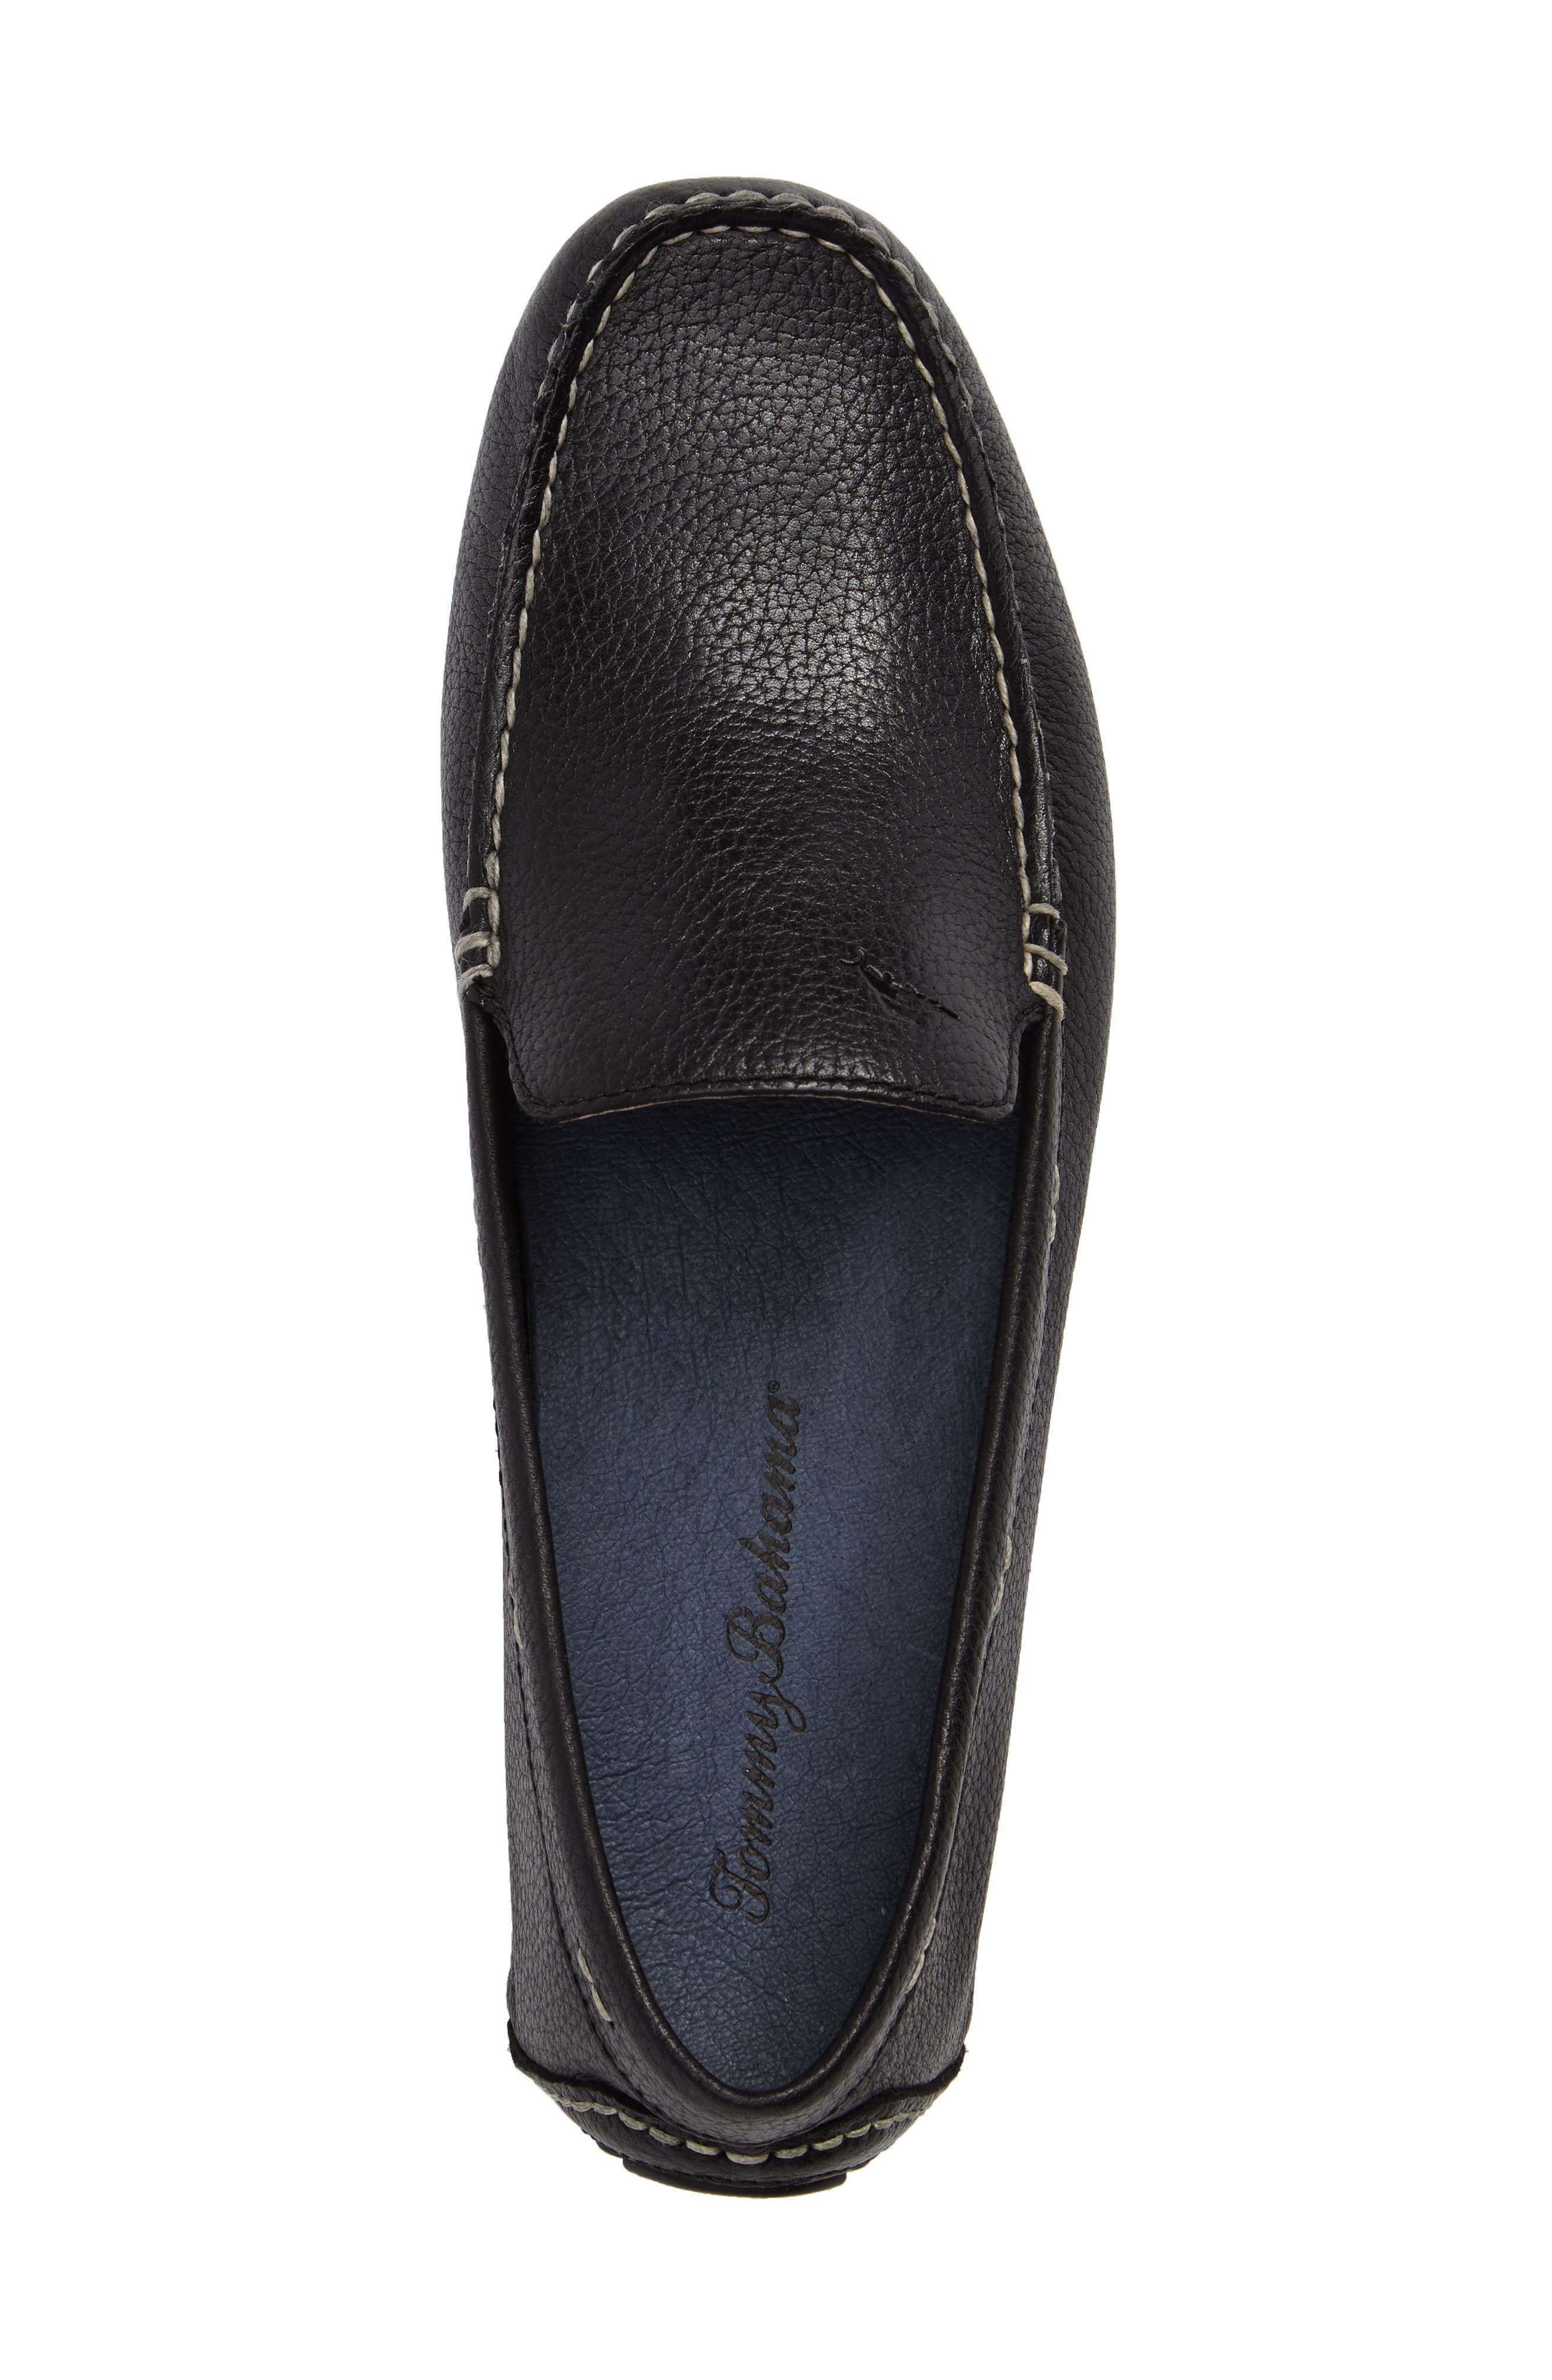 Pagota Driving Loafer,                             Alternate thumbnail 5, color,                             BLACK LEATHER